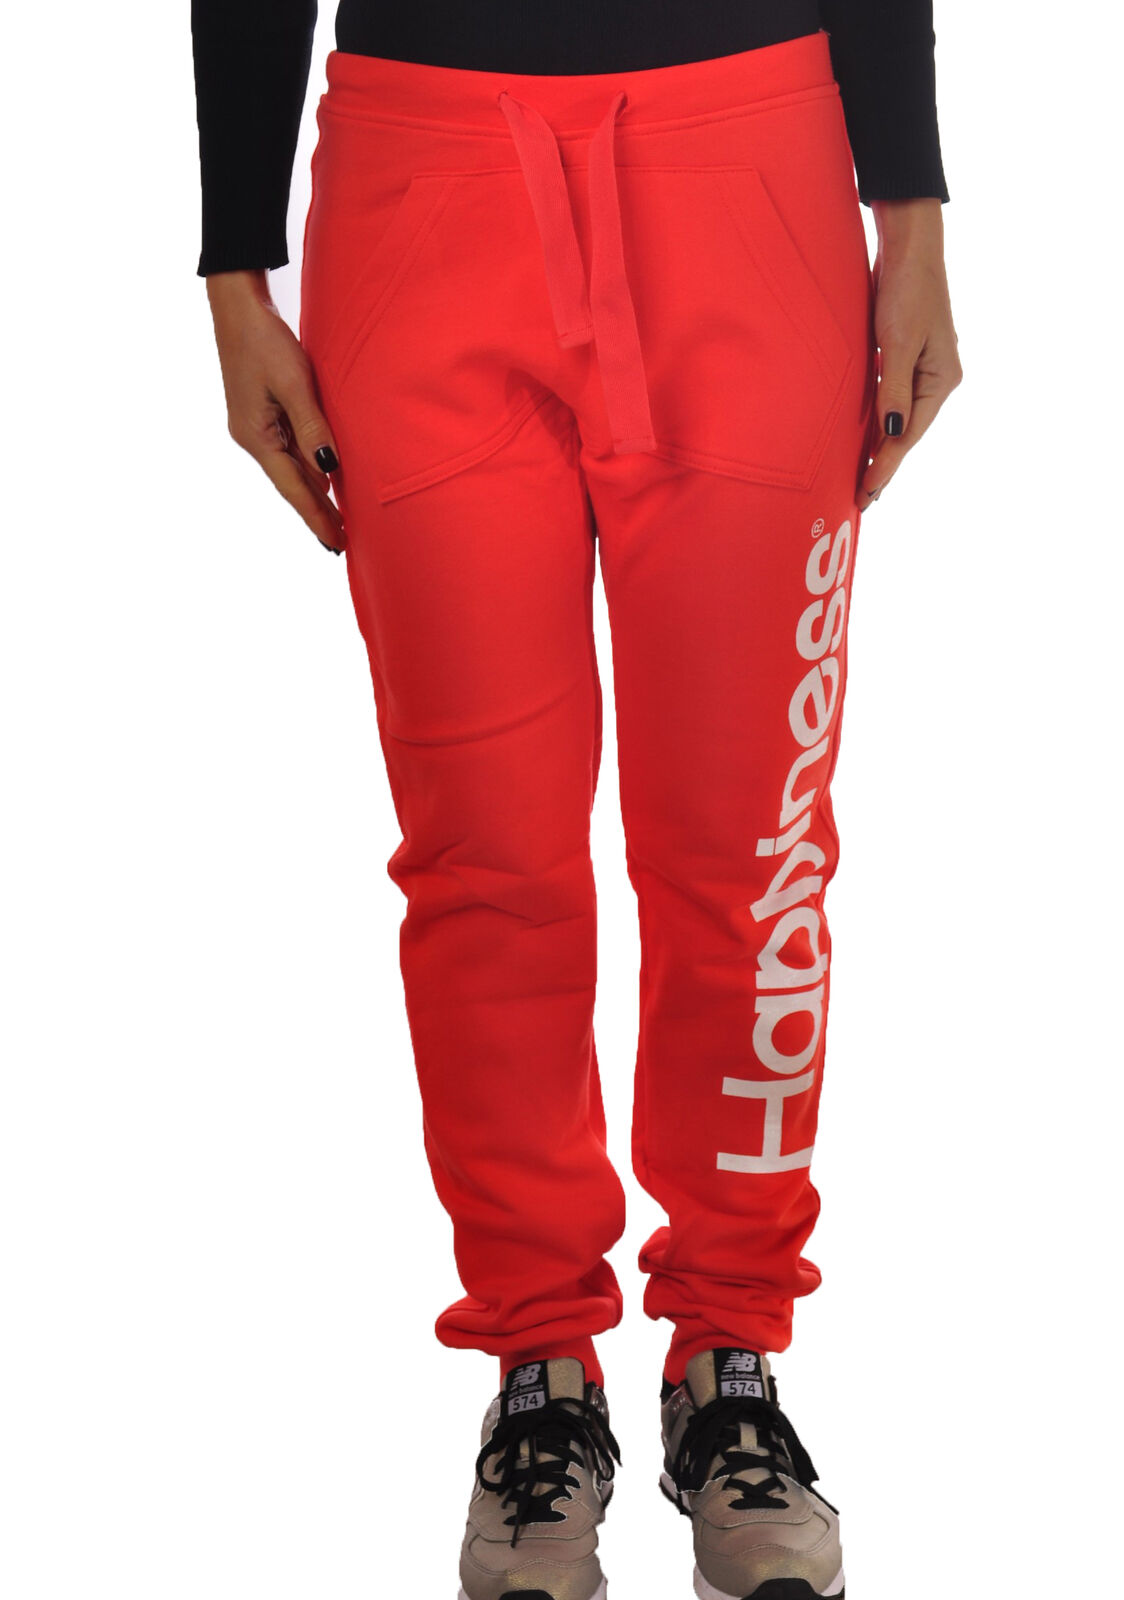 Happiness - Pants, Trousers, sweatshirt - Woman - Red - 4819115G184253